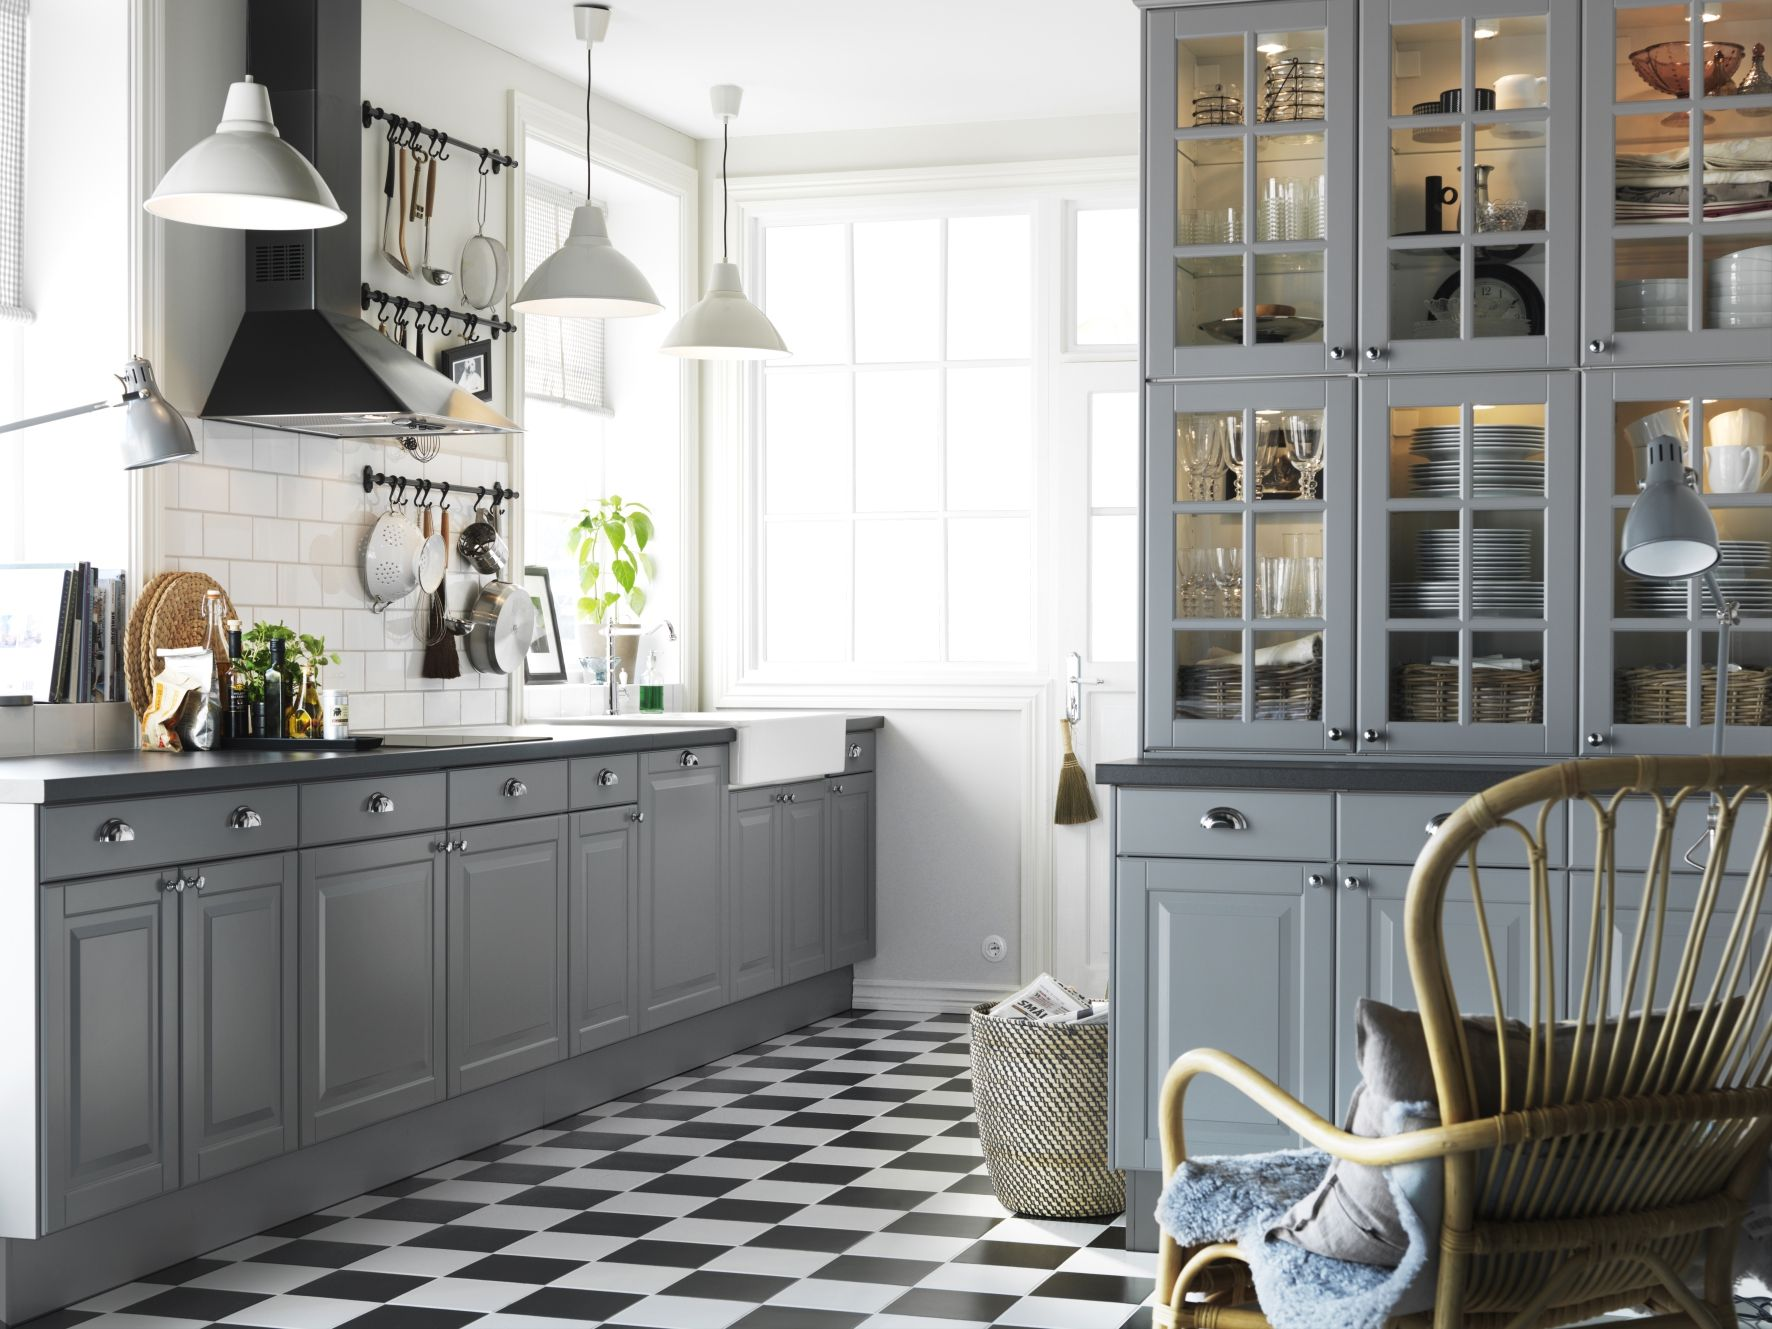 Ikea Offering You More Choice In Our Country Kitchen Range Liding Is Now Available